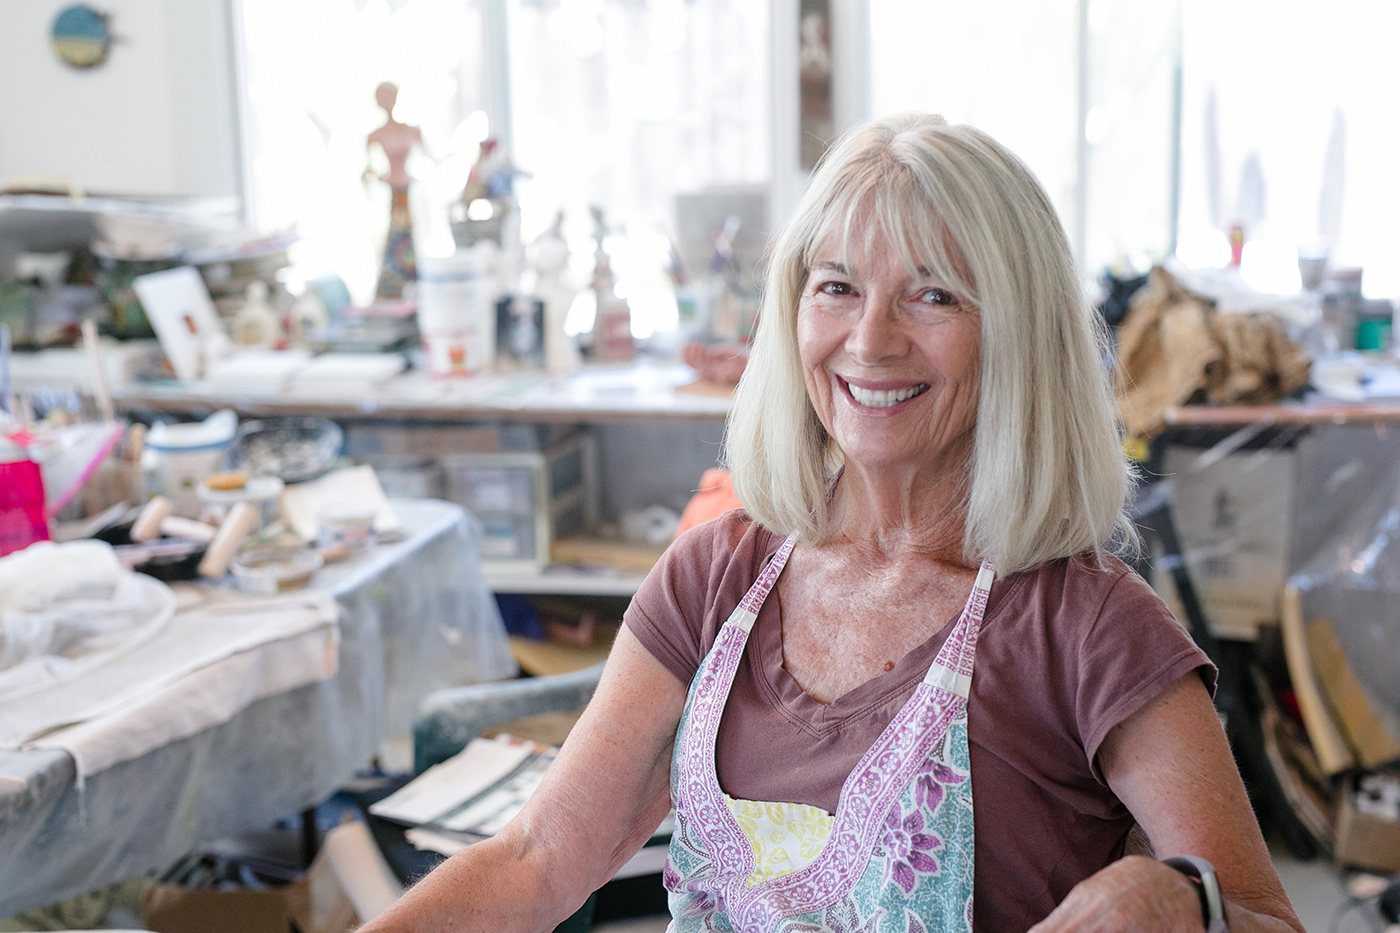 Encinitas artist Carla Funk sits among works in her studio July 2. (Photo by Jen Acosta)